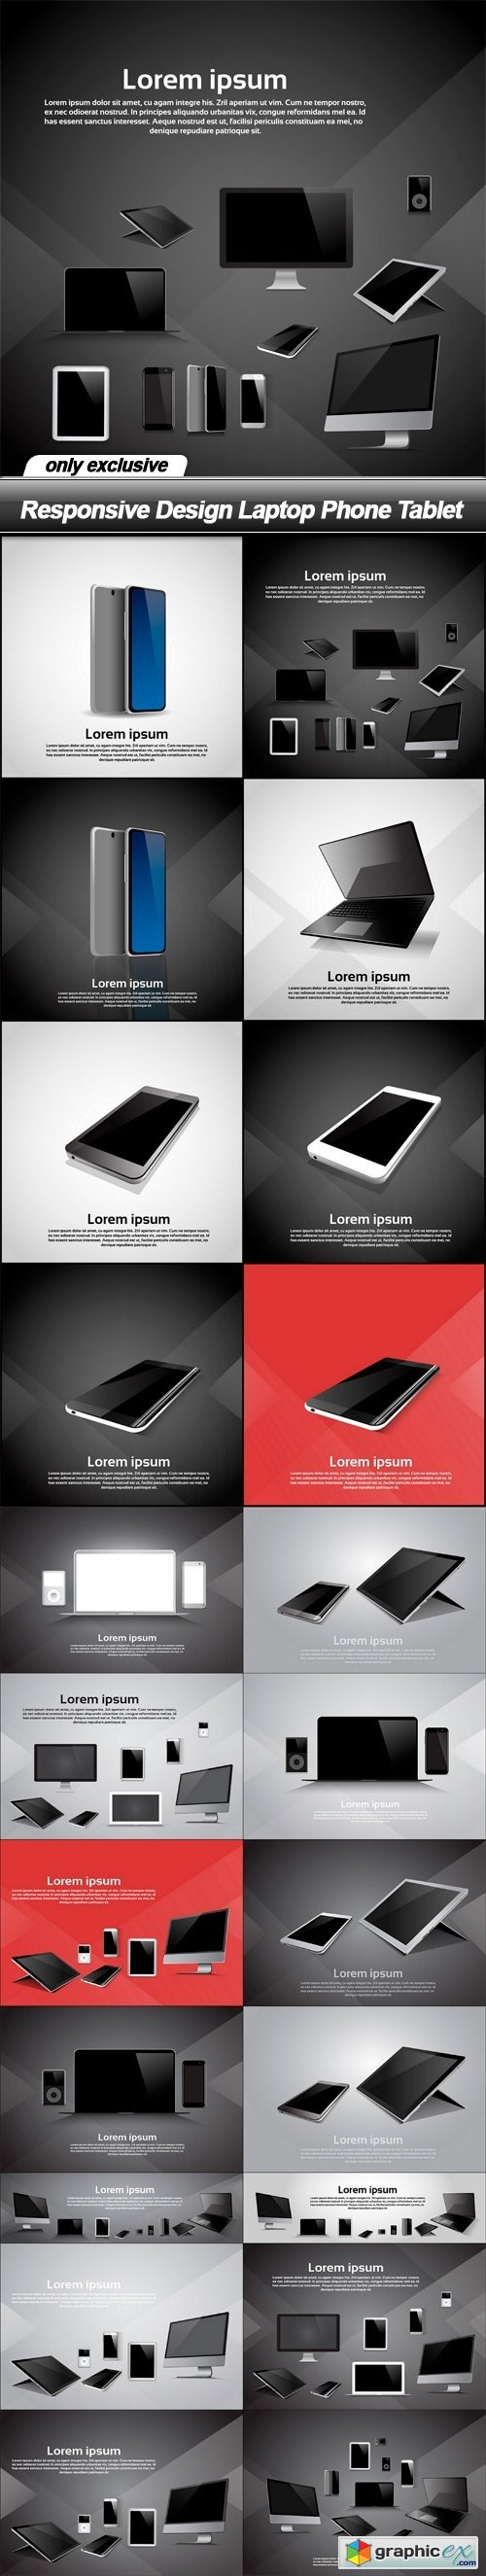 Responsive Design Laptop Phone Tablet - 22 EPS